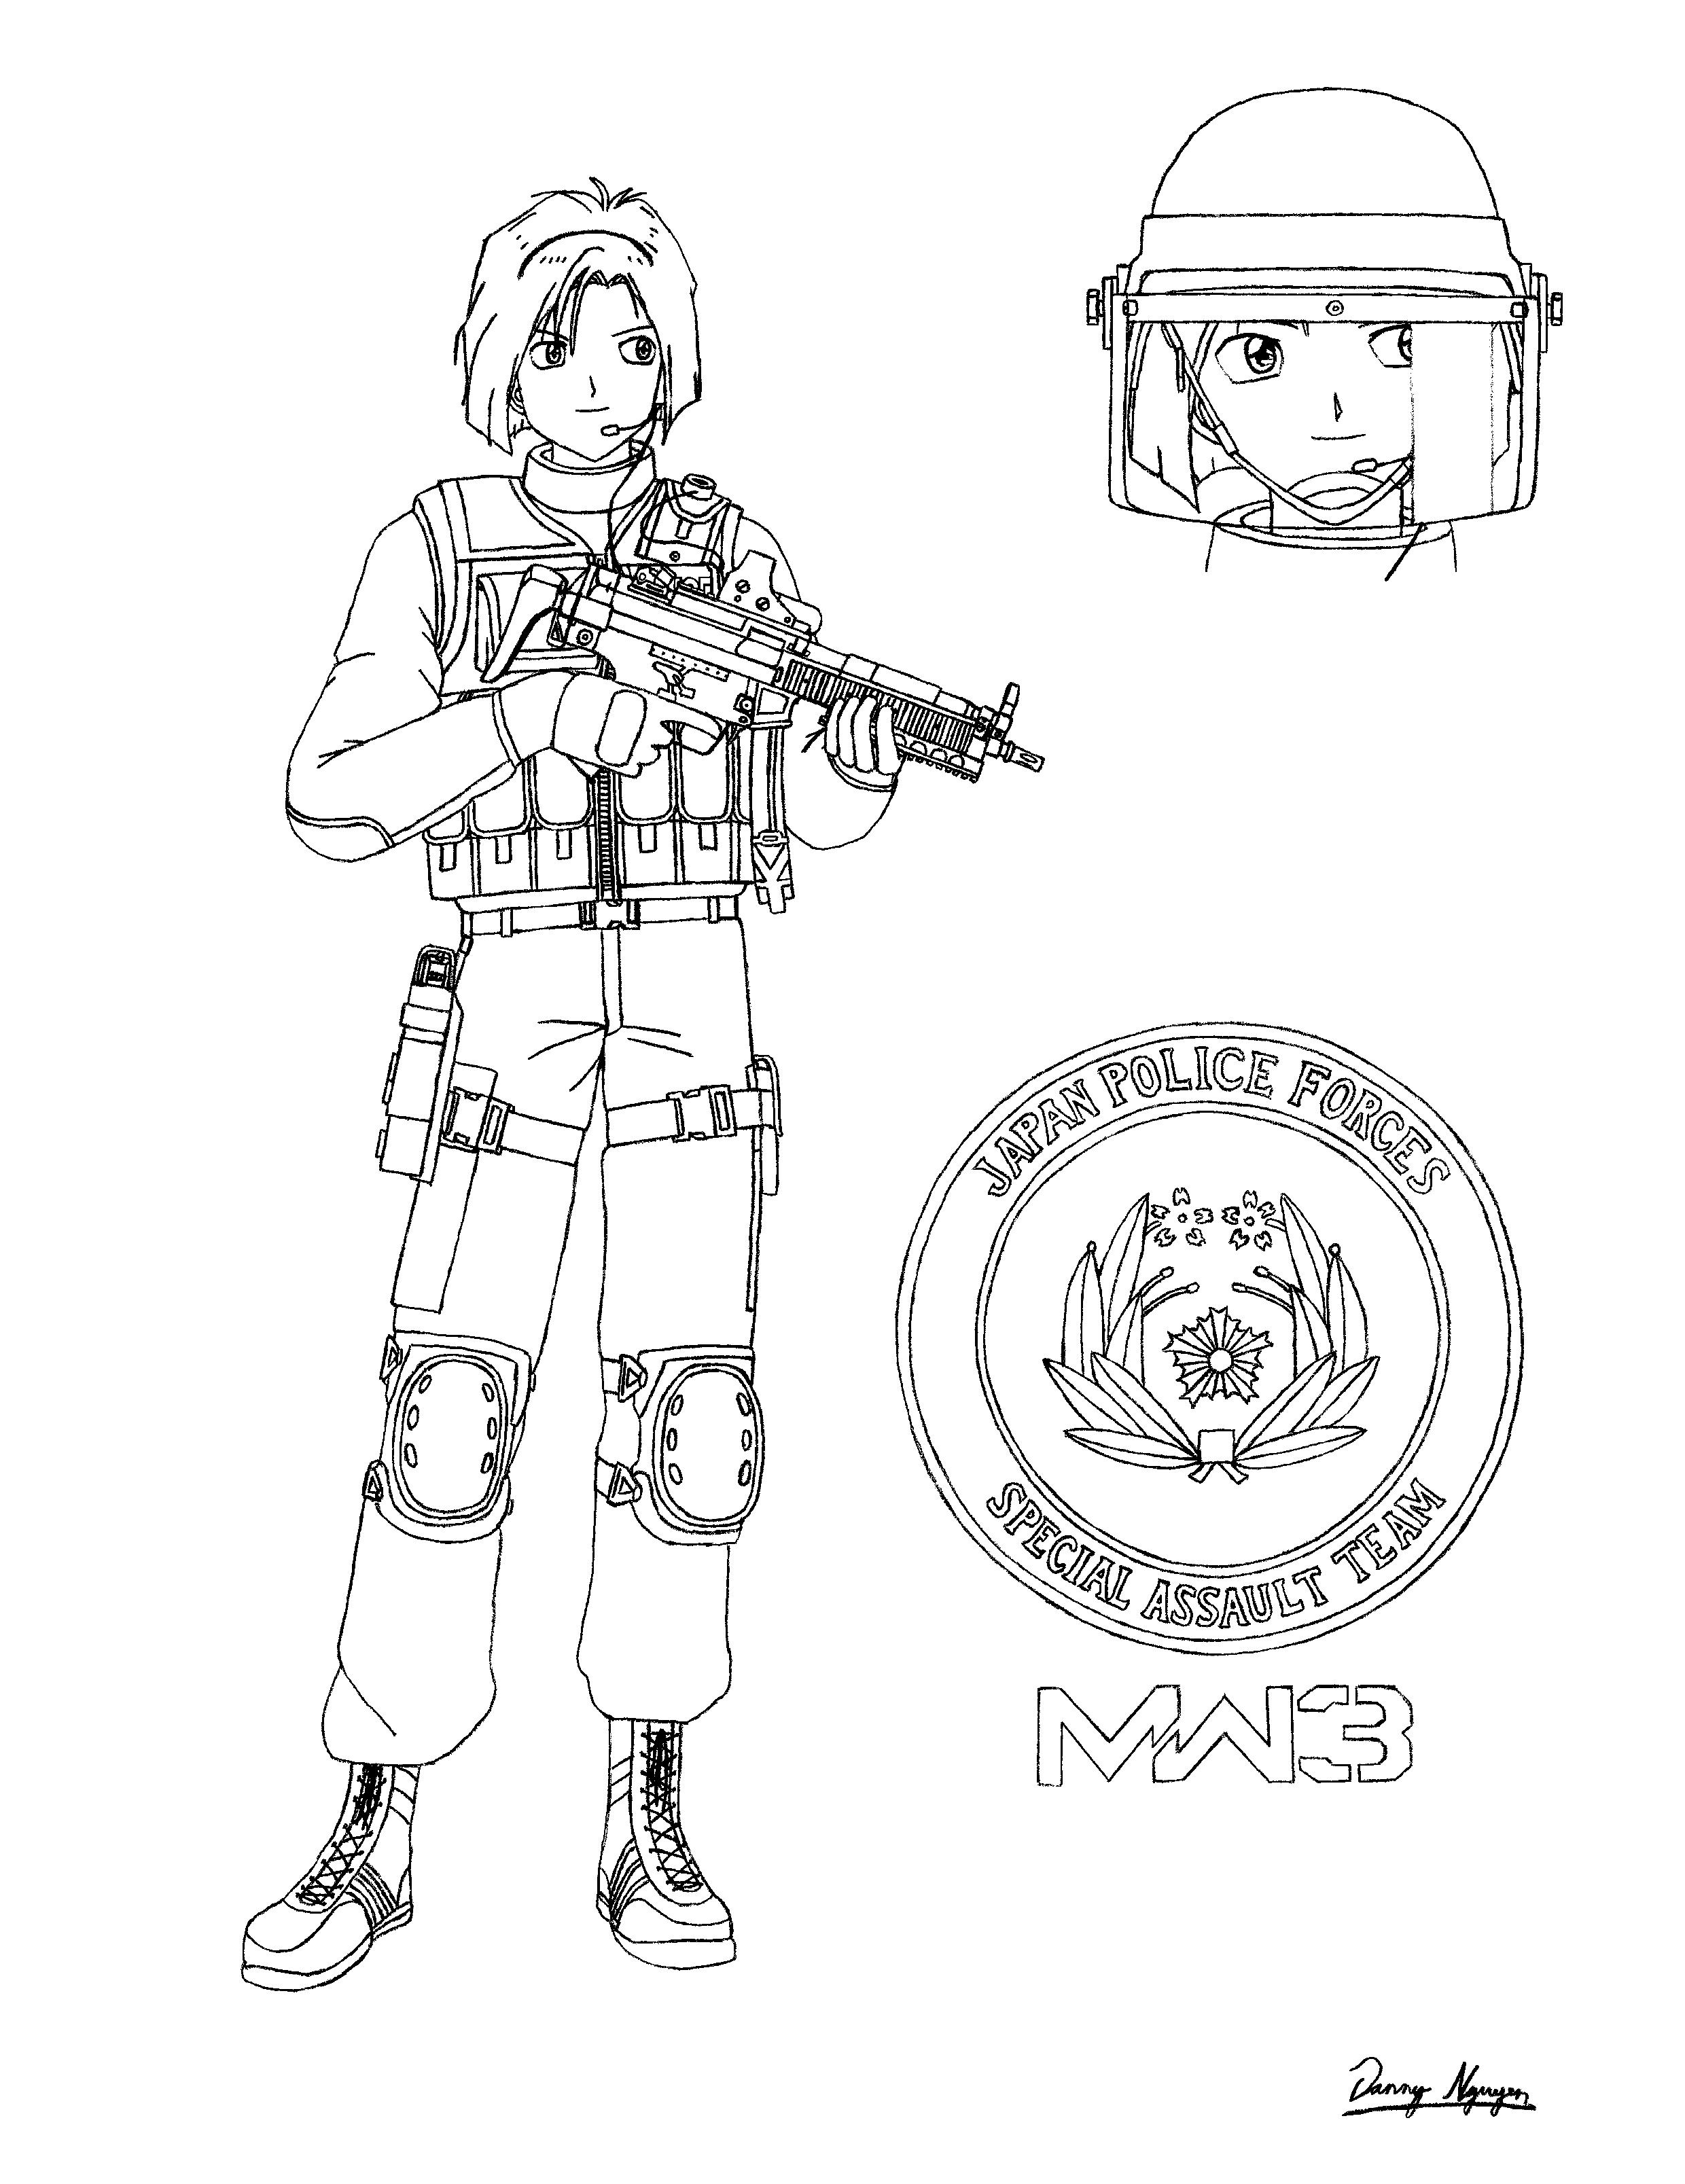 Coloring Pages Of Advanced Warfare : Free advance warfare coloring pages